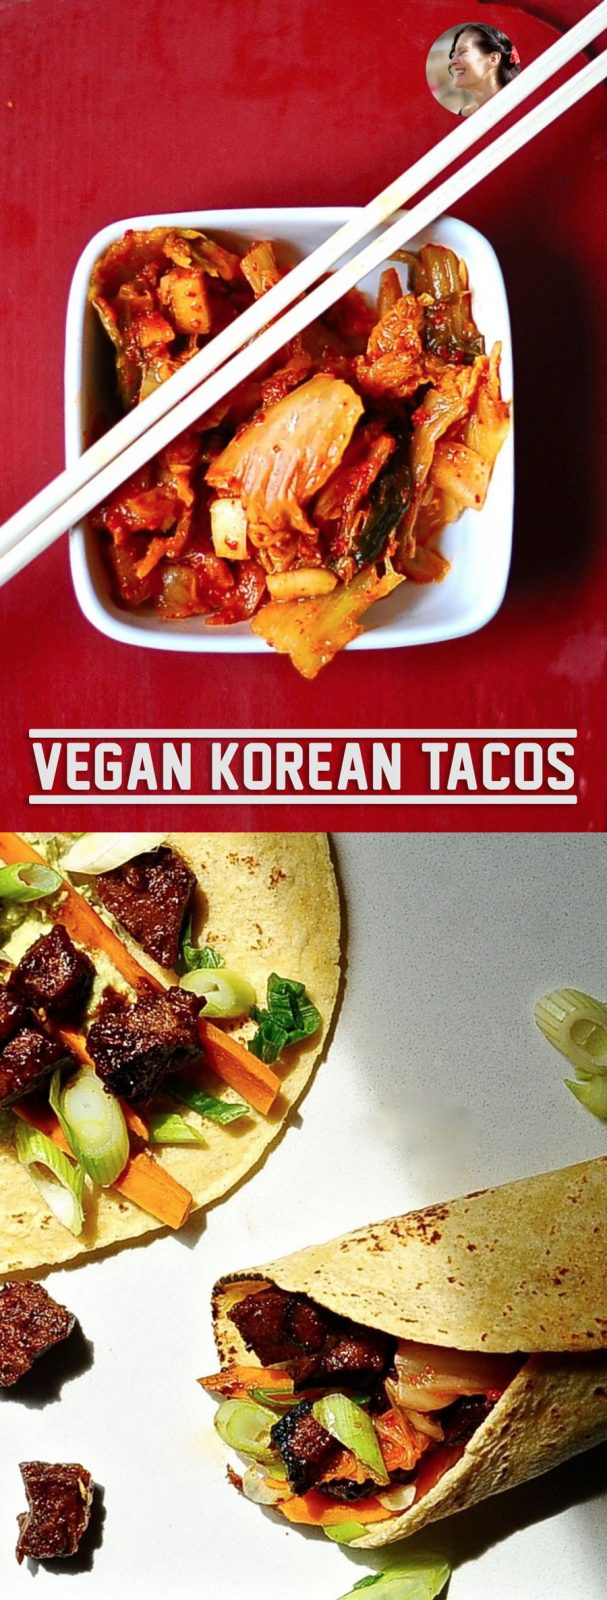 Korean Seitan Tacos, Vegan